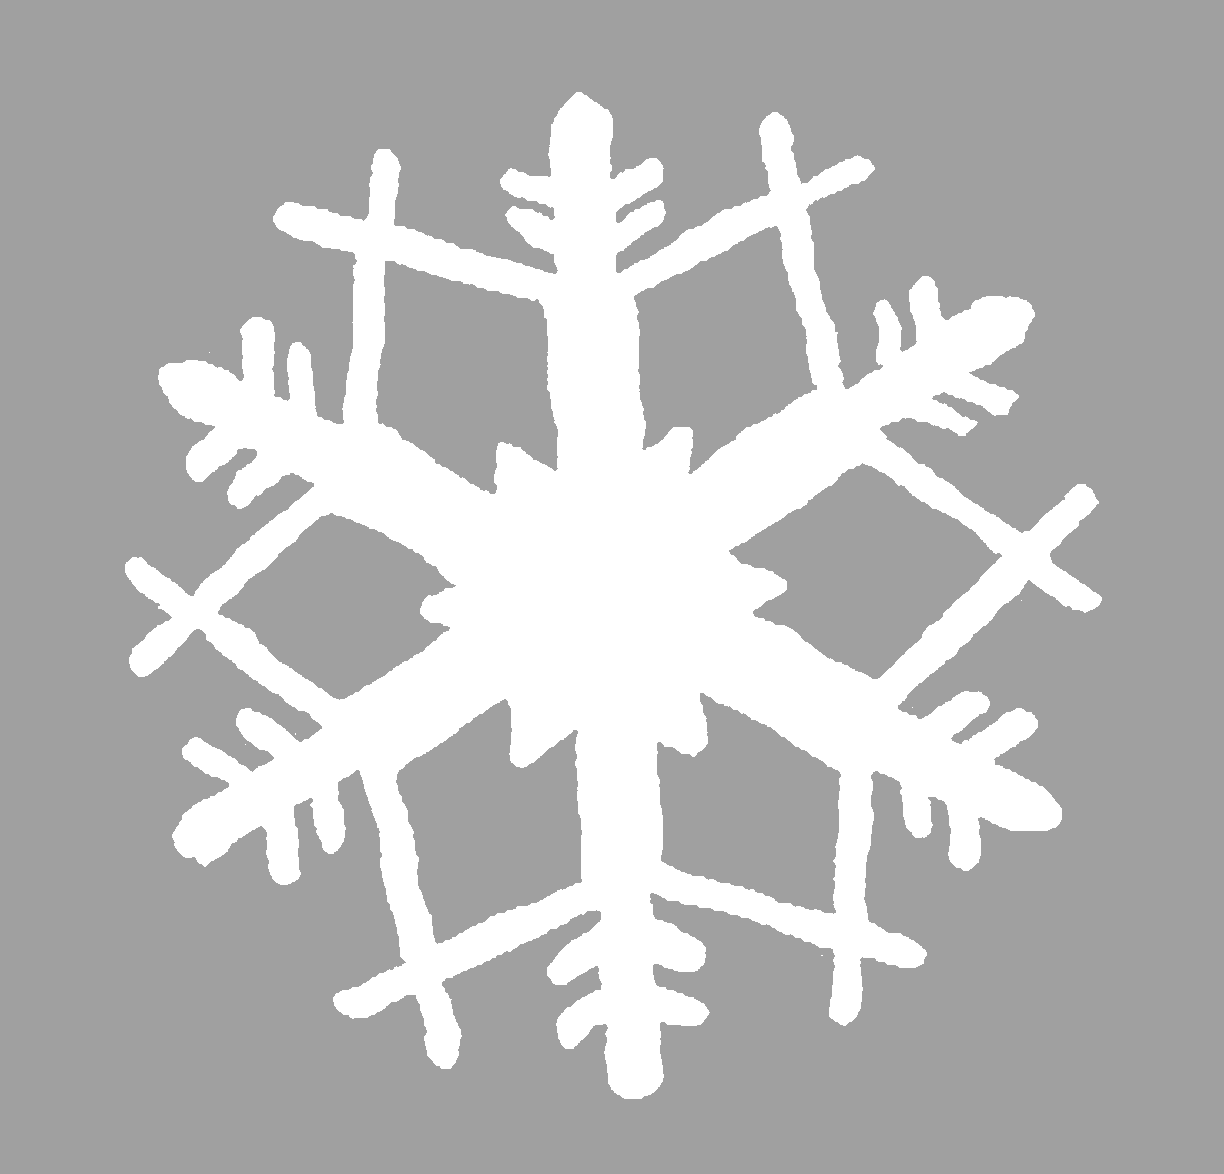 Etsy snowflake clipart clip art free stock The Graphics Monarch: Digital Snowflake Cutout Silhouette Downloads ... clip art free stock